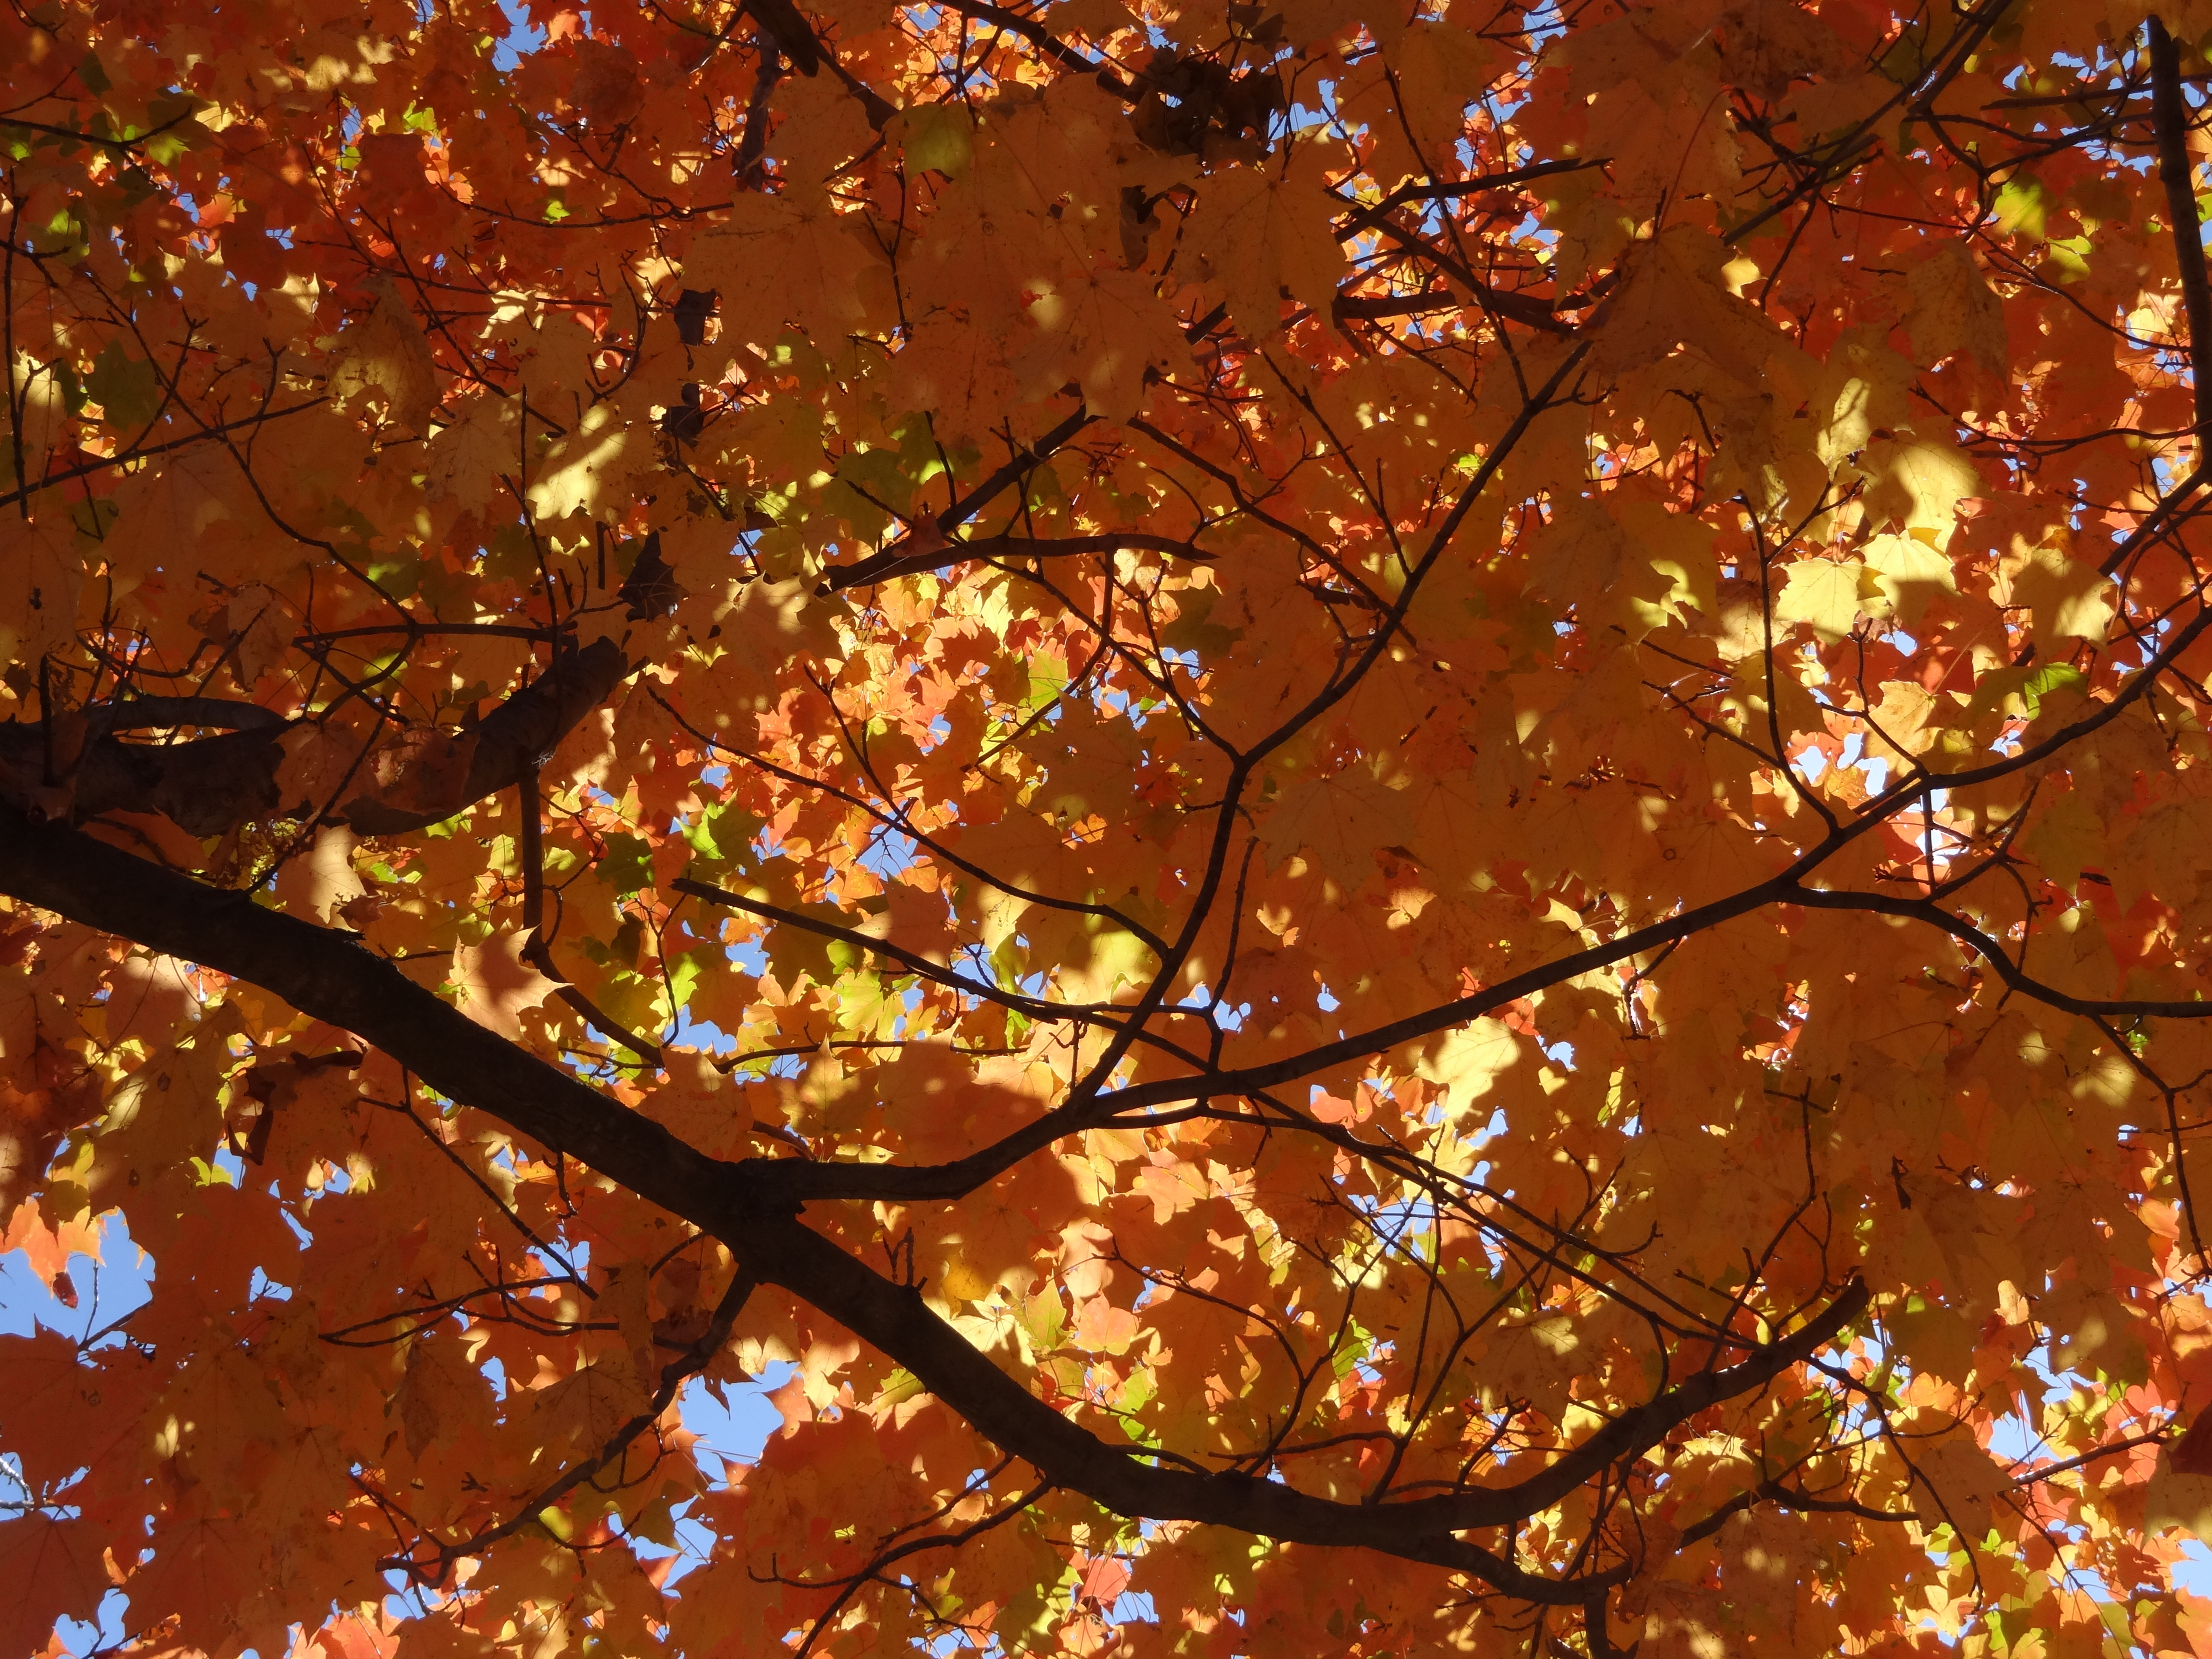 Autumn | Definition of Autumn by Merriam-Webster